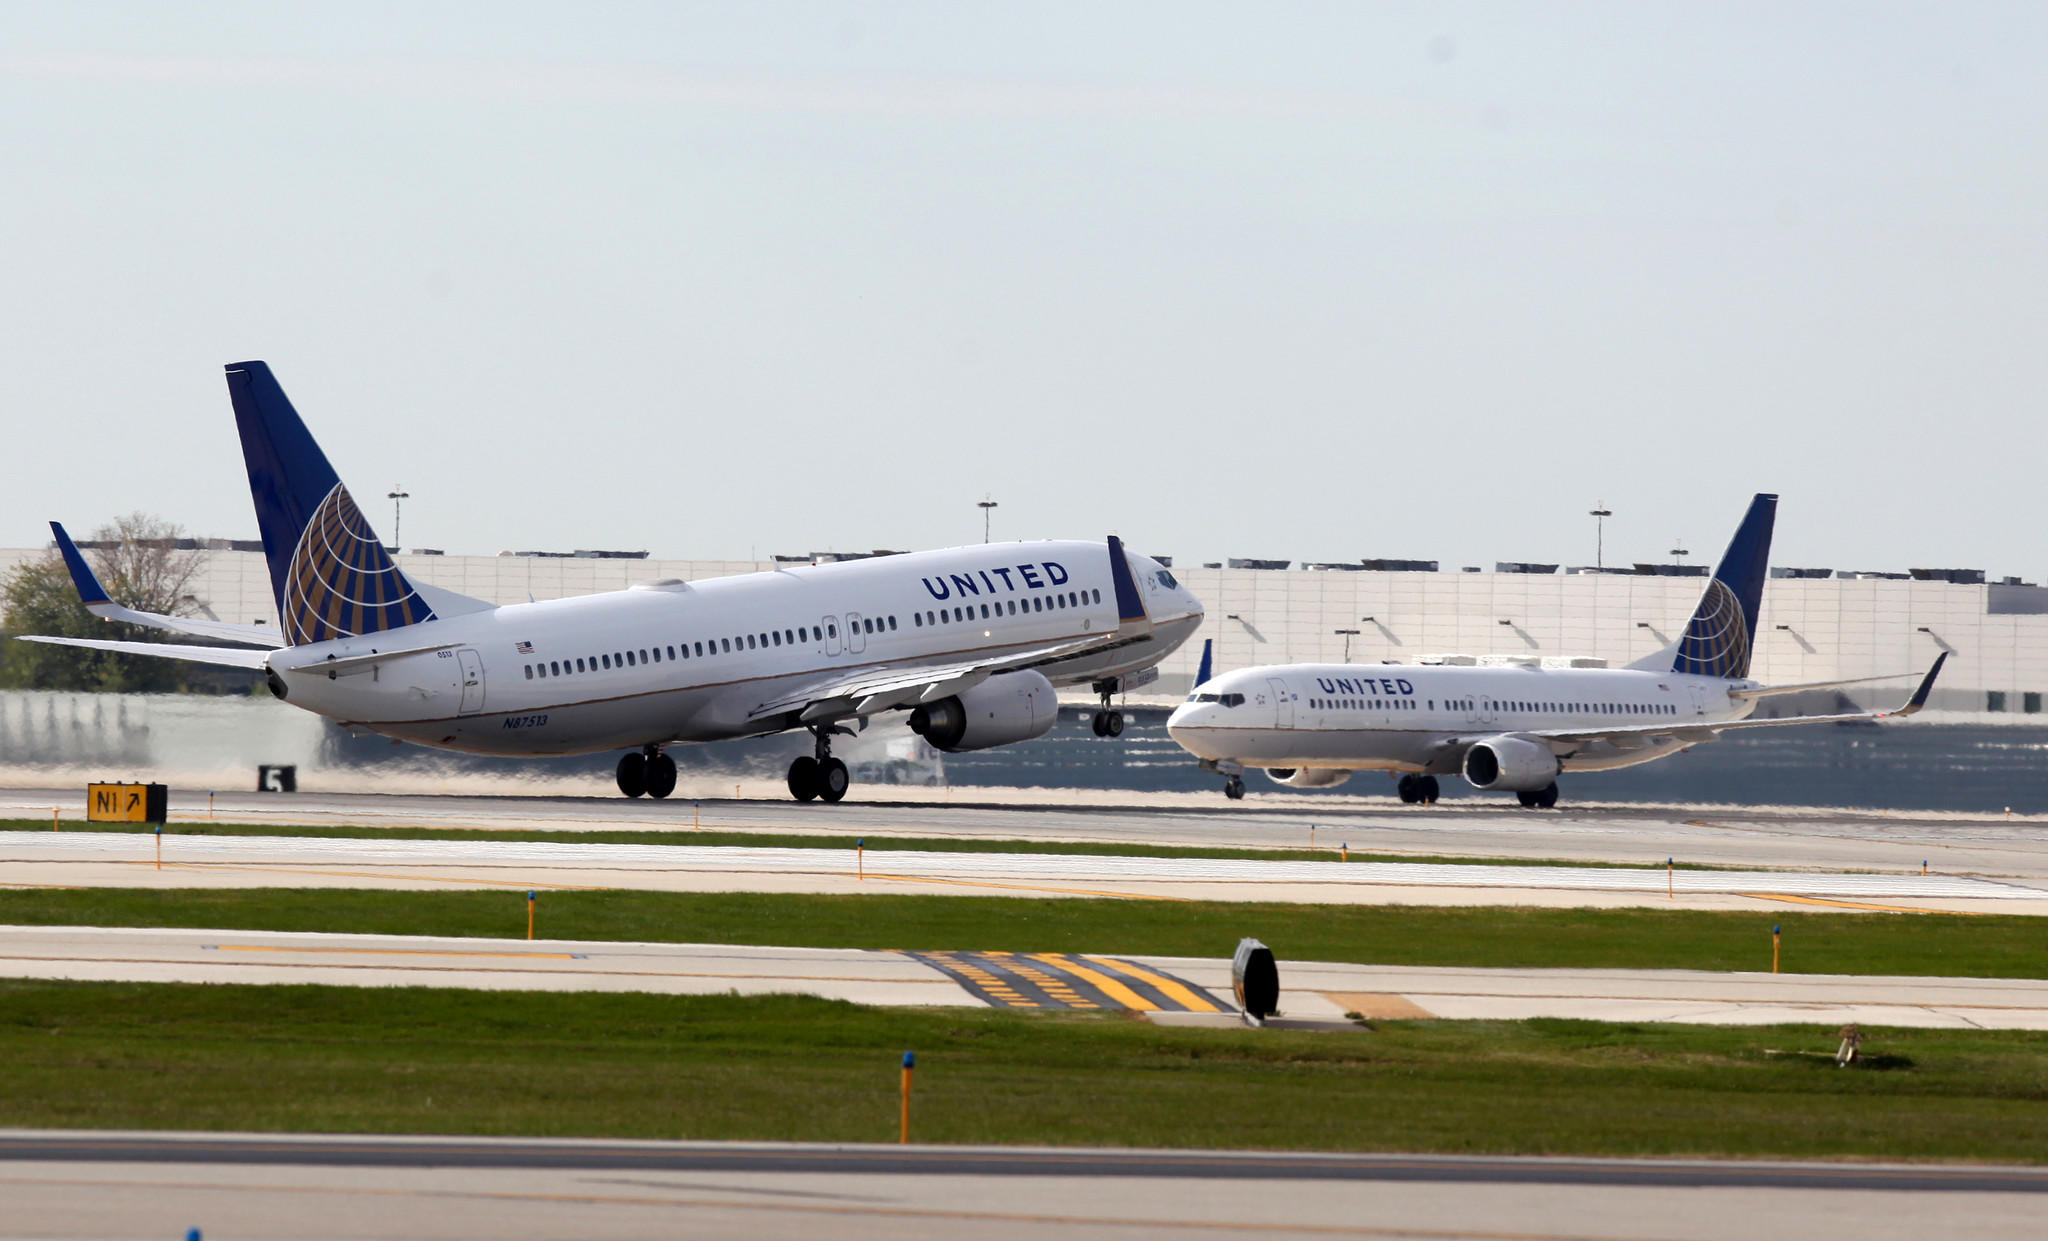 A United Airlines plane takes off as another lands at Chicago O'Hare International Airport in Chicago, Friday, Oct. 25, 2013.